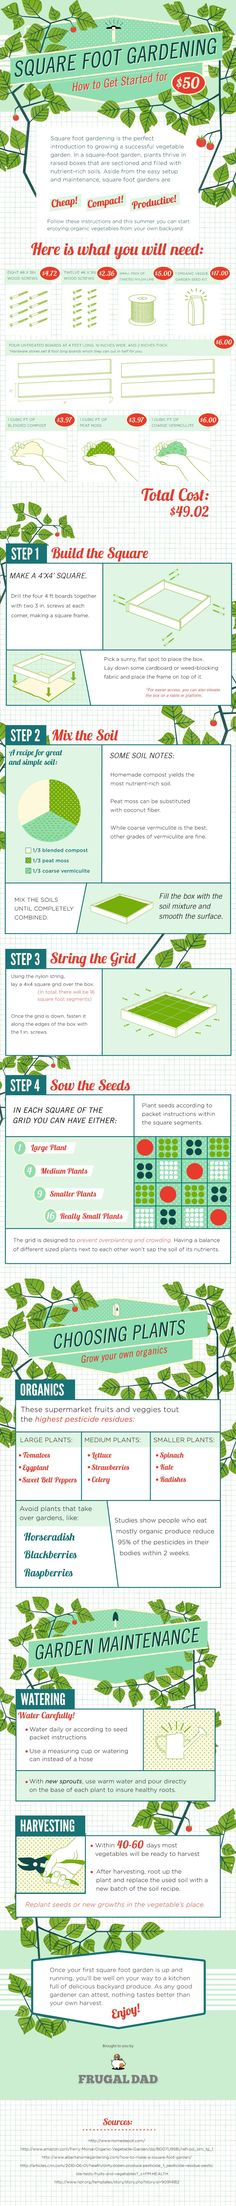 Square Foot Gardening - how to get started for Fifty dollars - Infographic